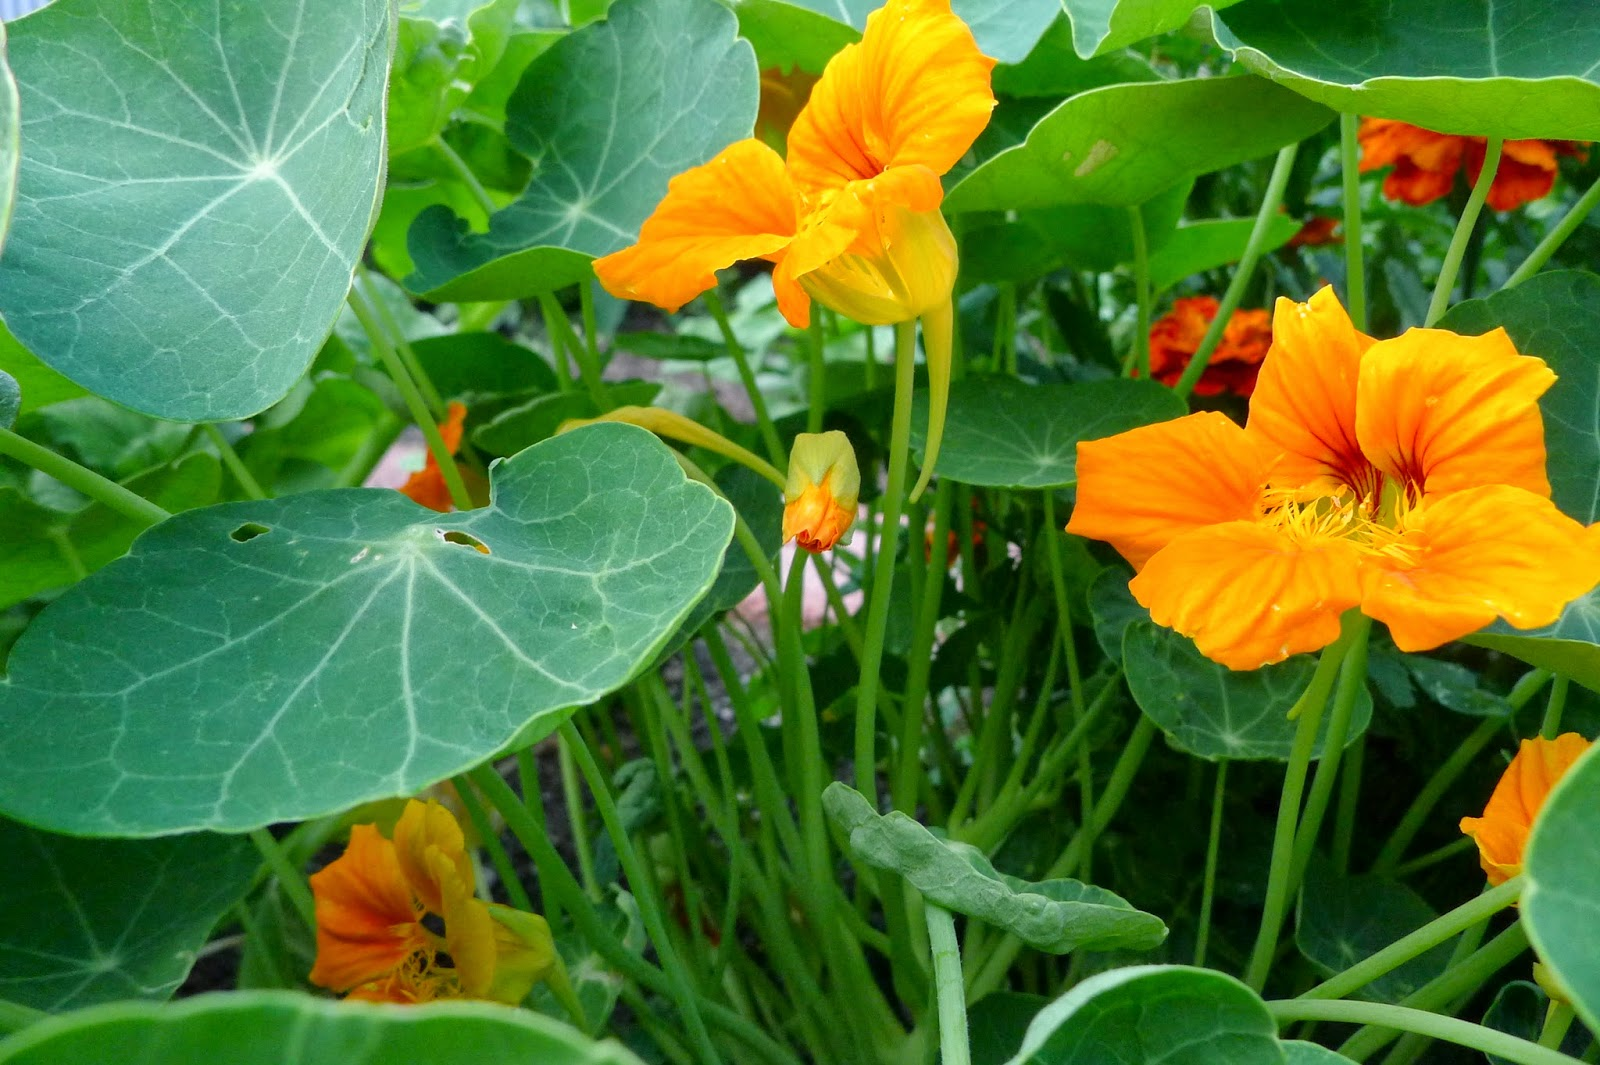 Nasturtiums, edible flowers